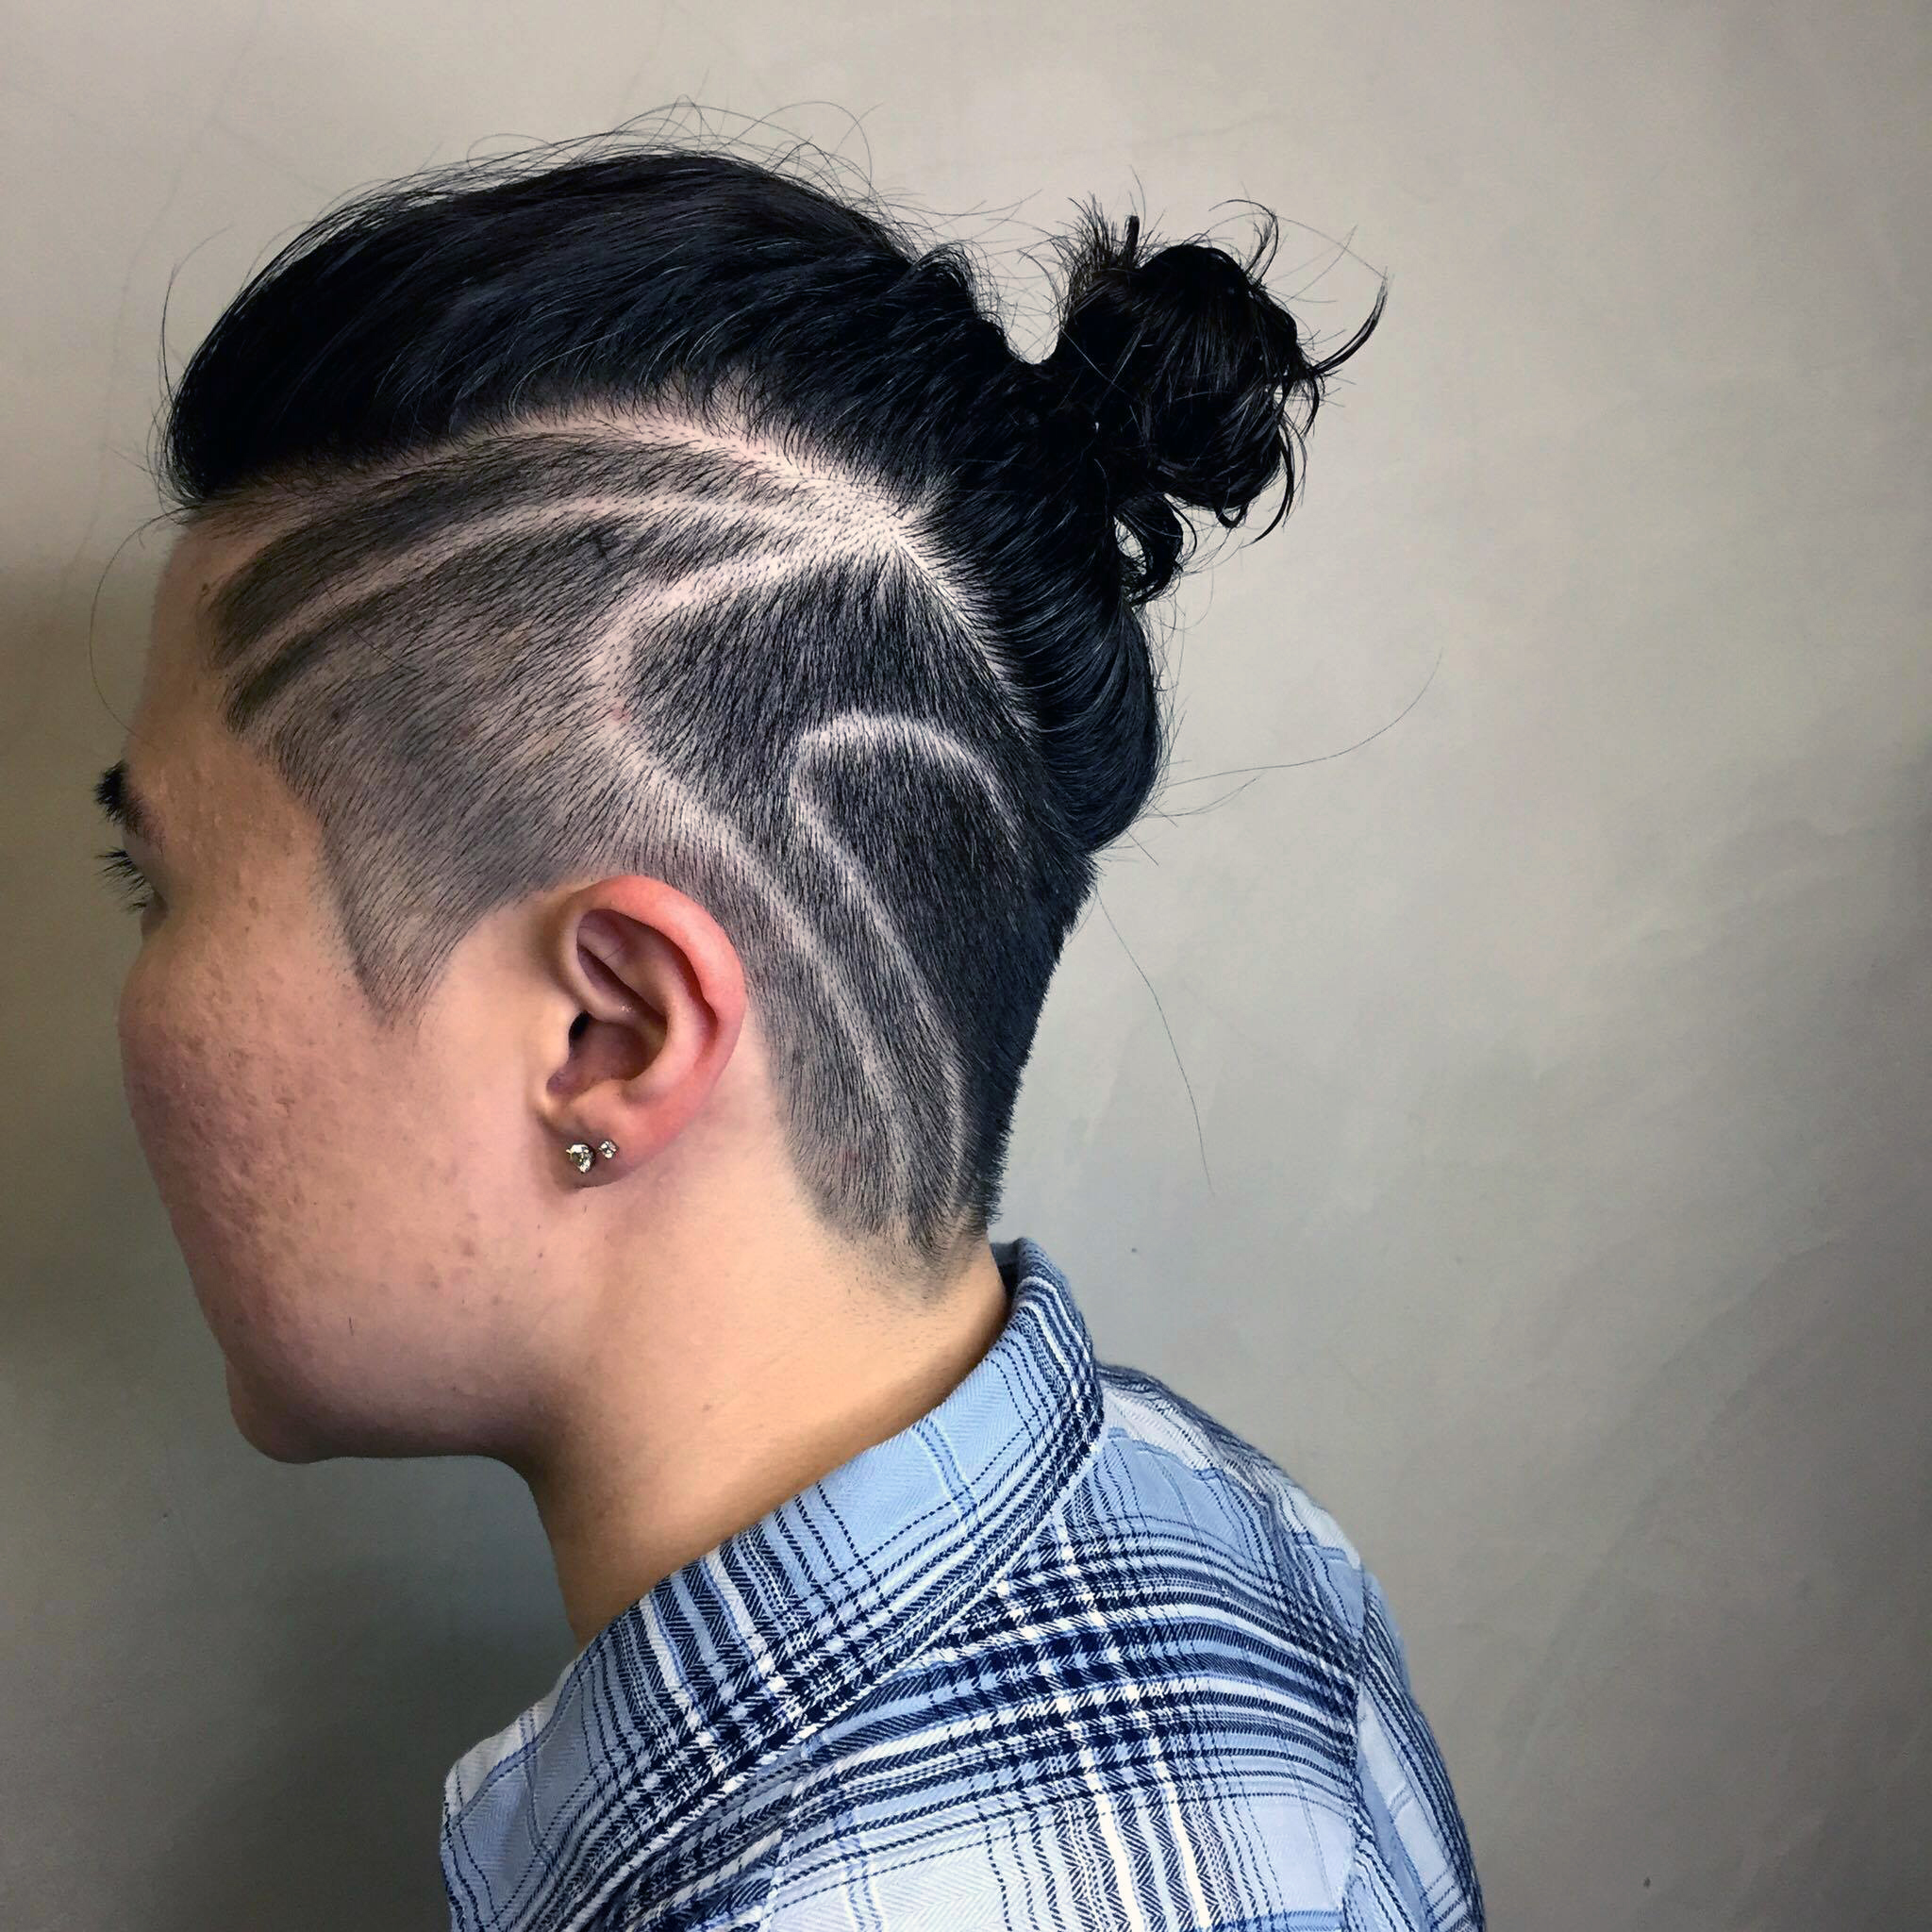 10 World Cup Haircuts Singapore Men Can Pull Off